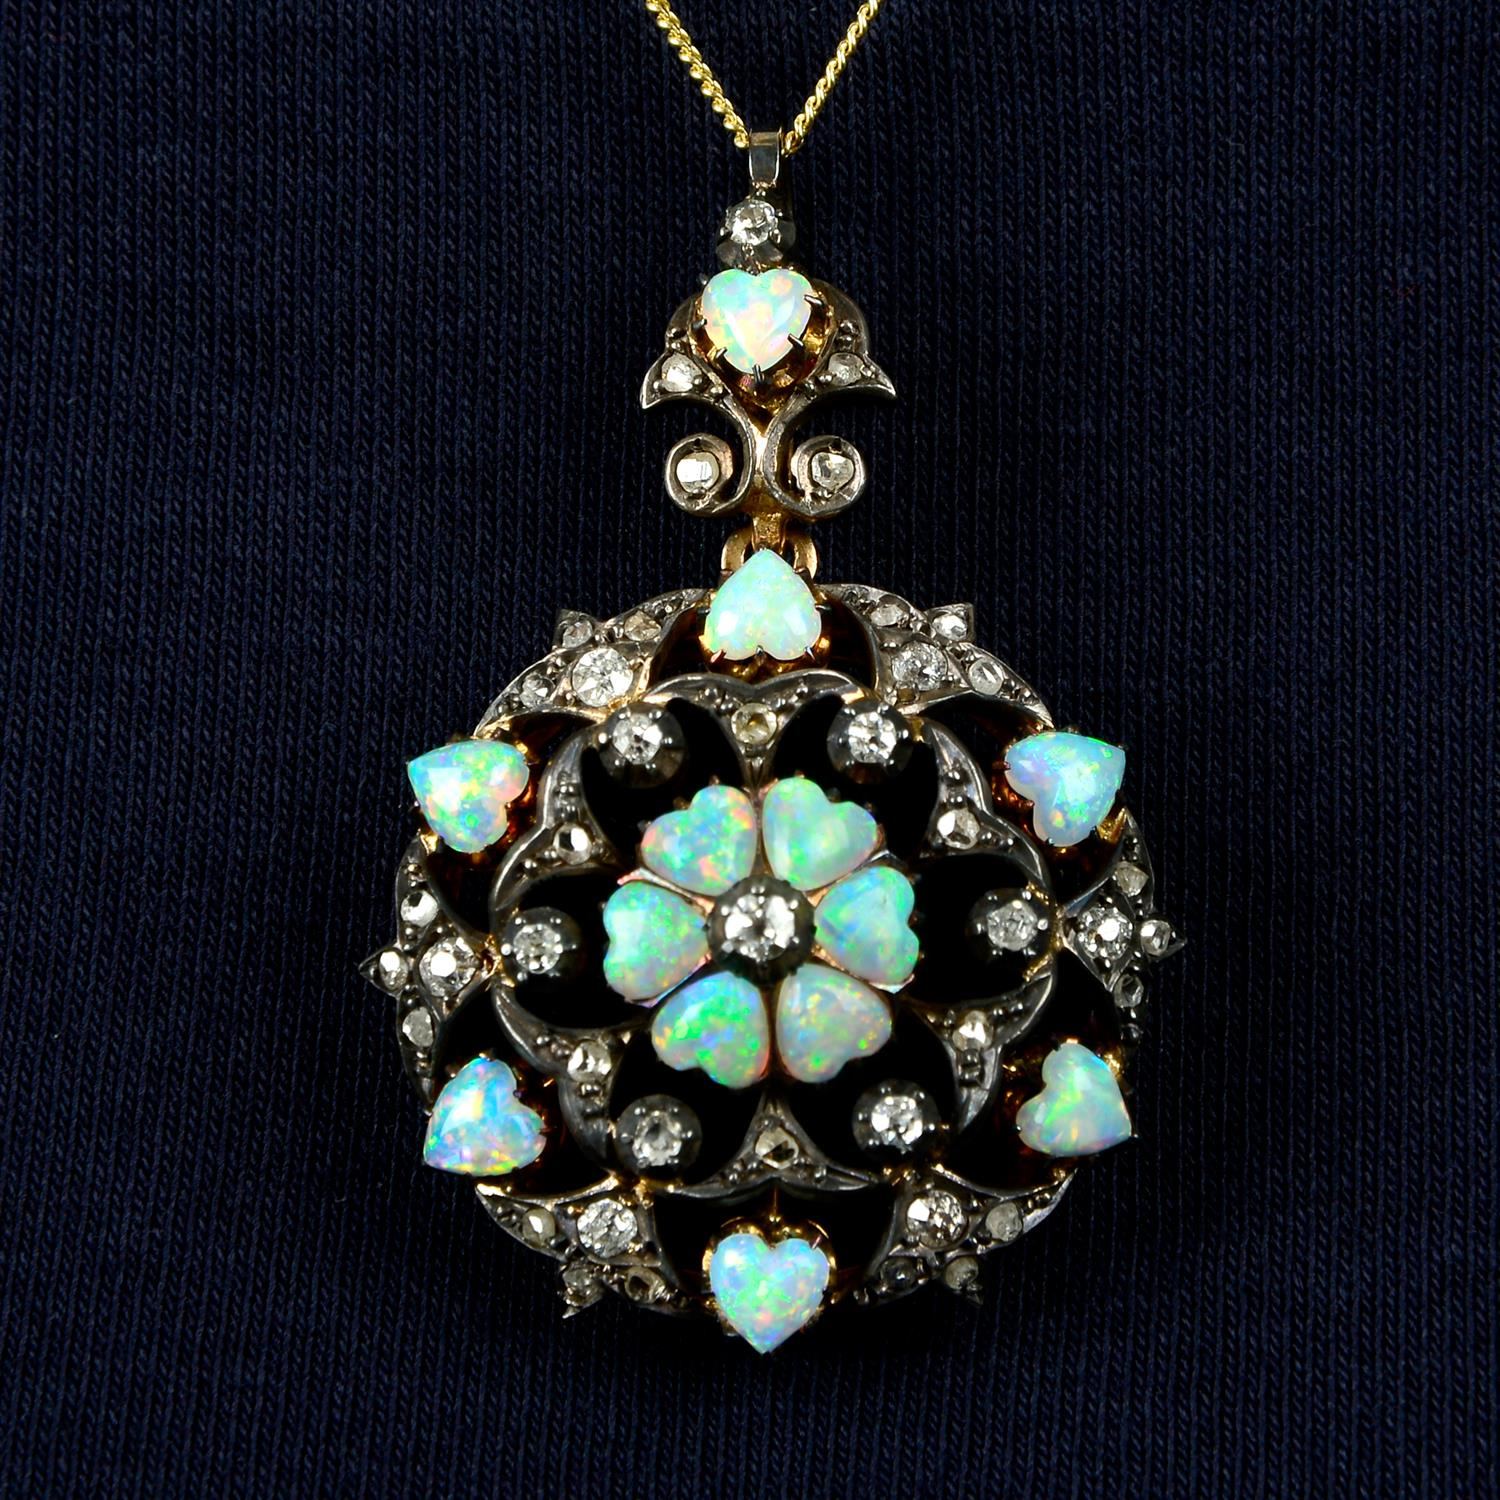 A silver and gold, late 19th century opal heart and diamond pendant/brooch.